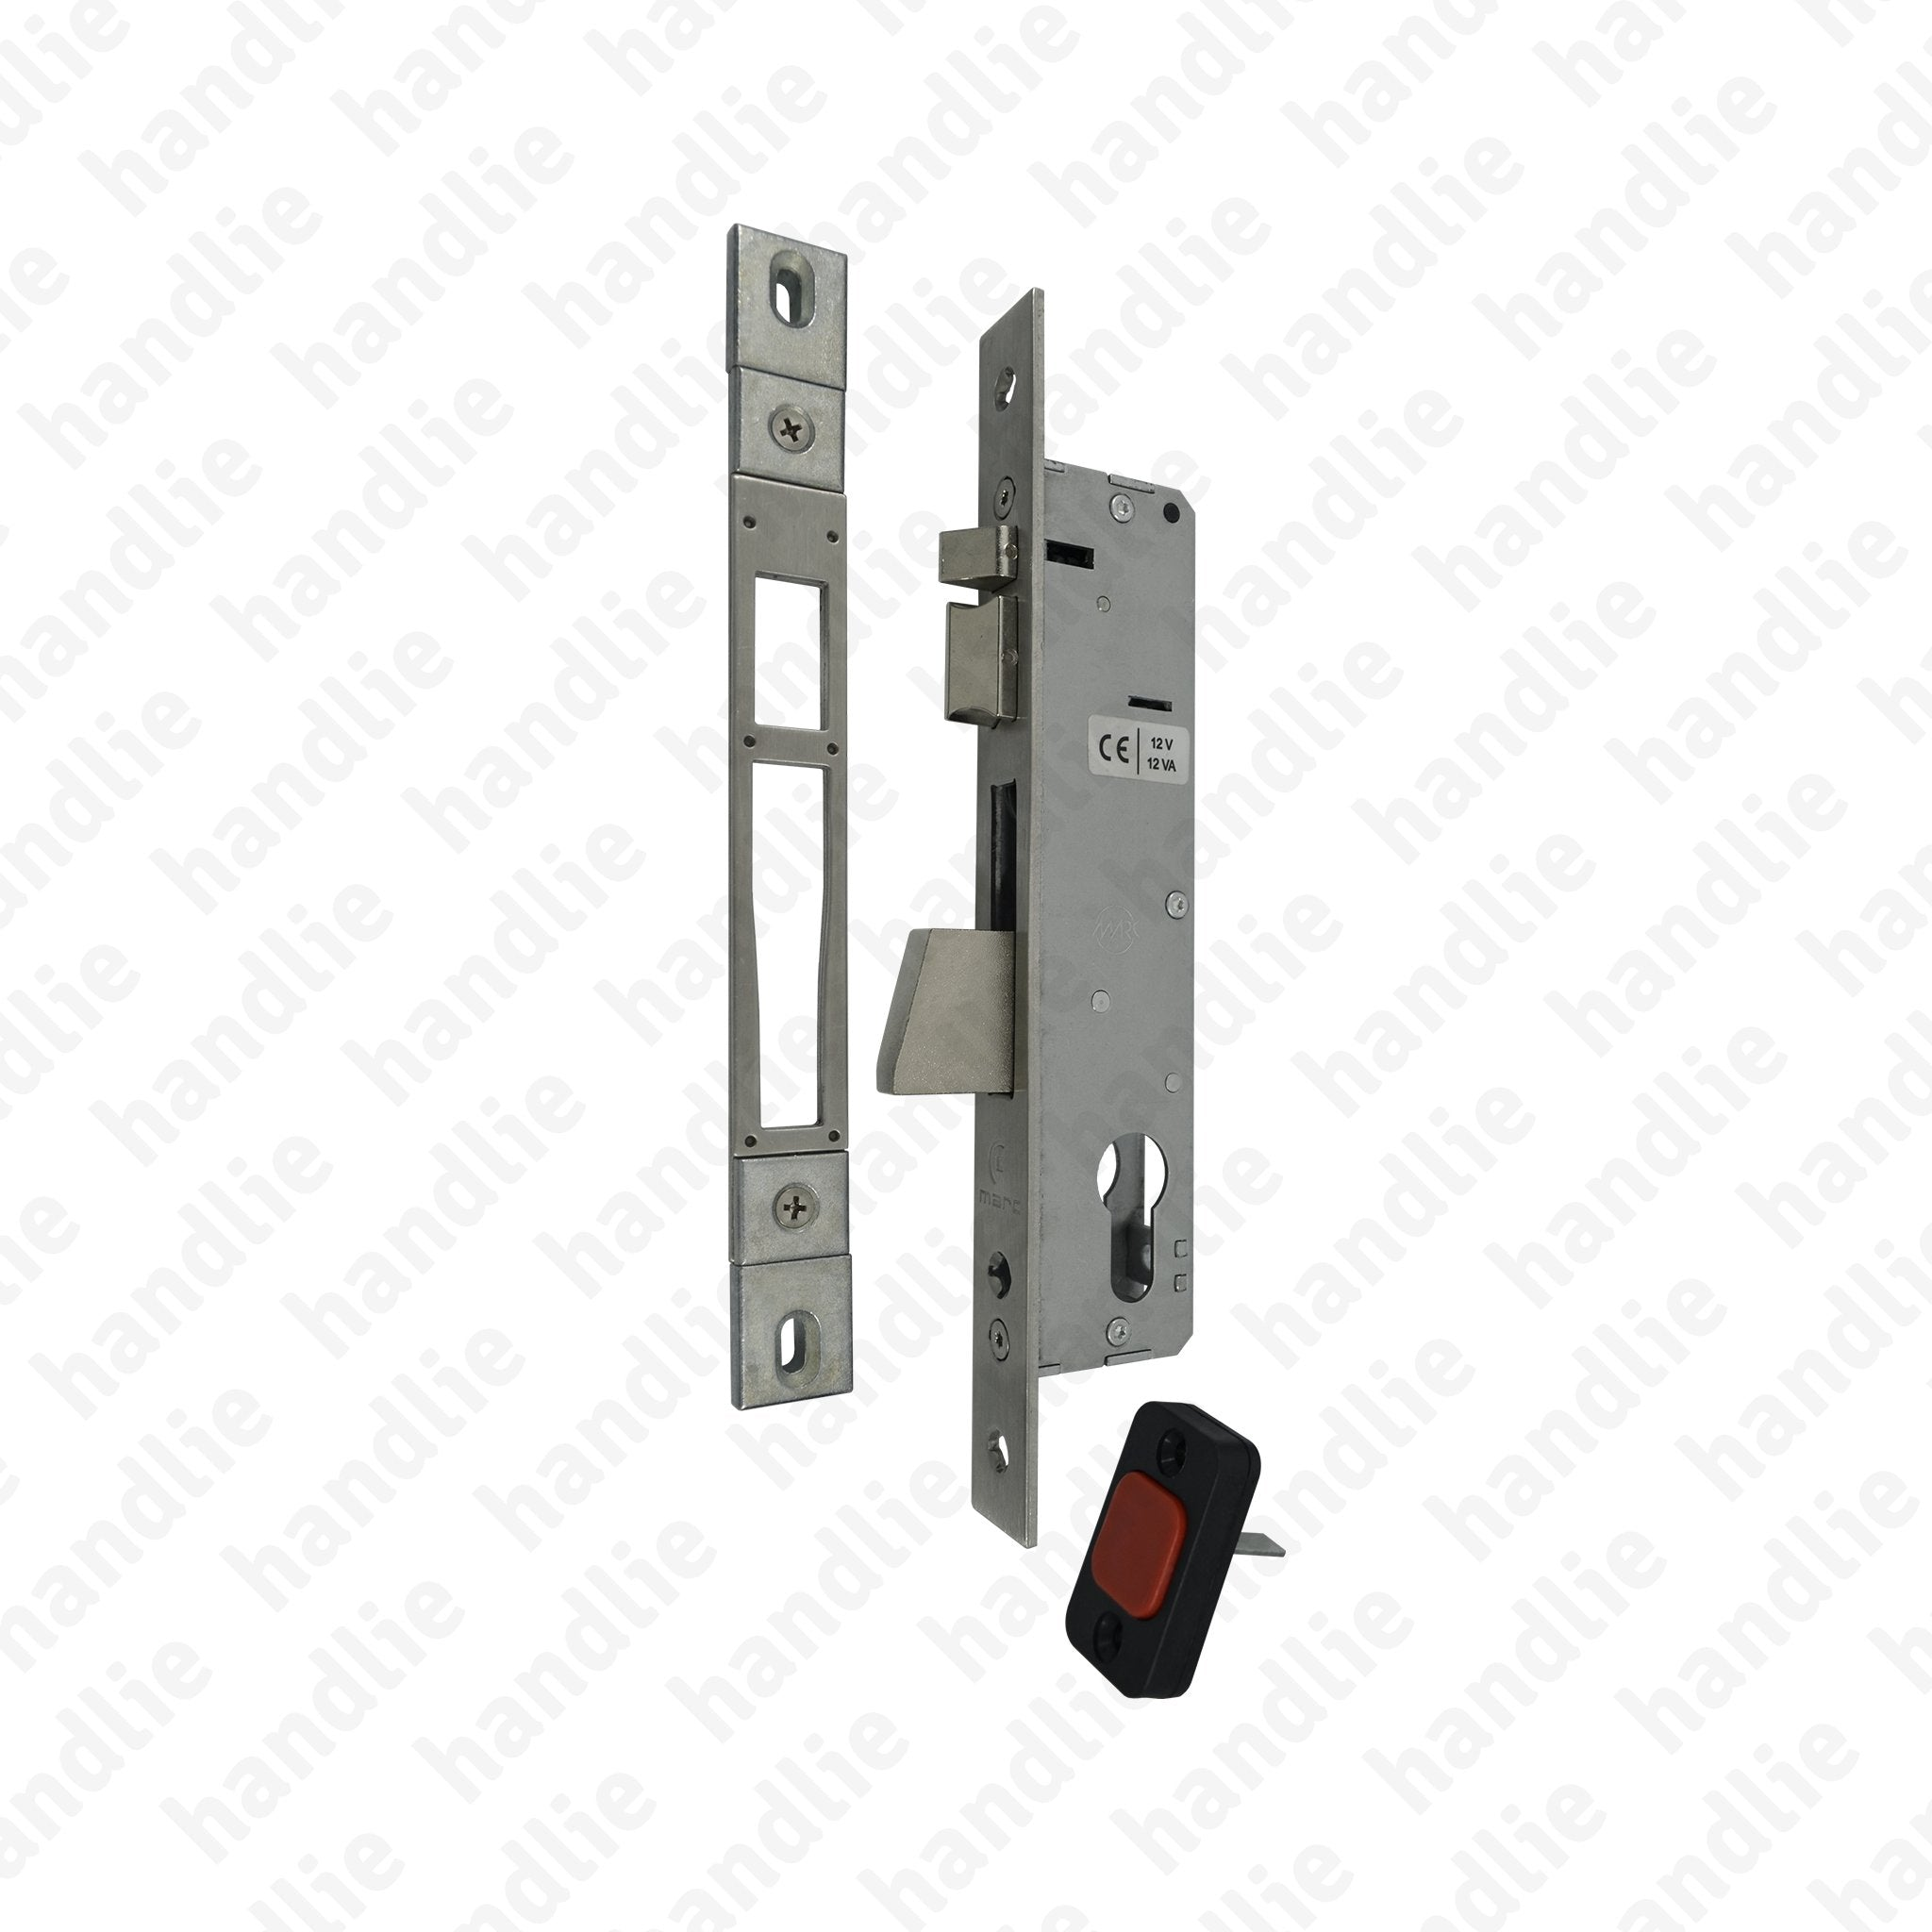 F 733 3 03 - Electric mortise lock for euro cylinder with rotating deadbolt